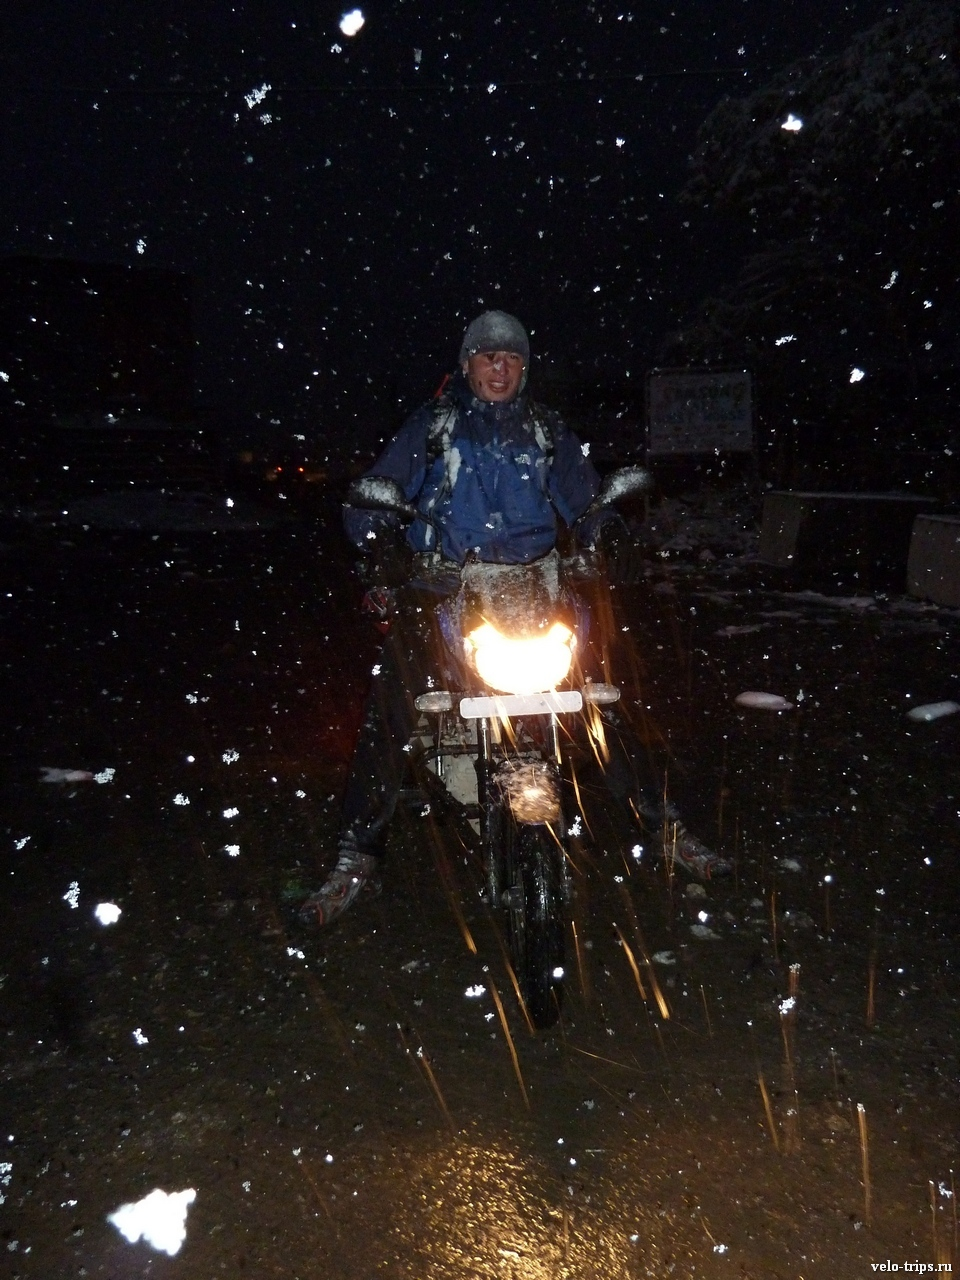 Andrey on moto in Losar, Himalayas